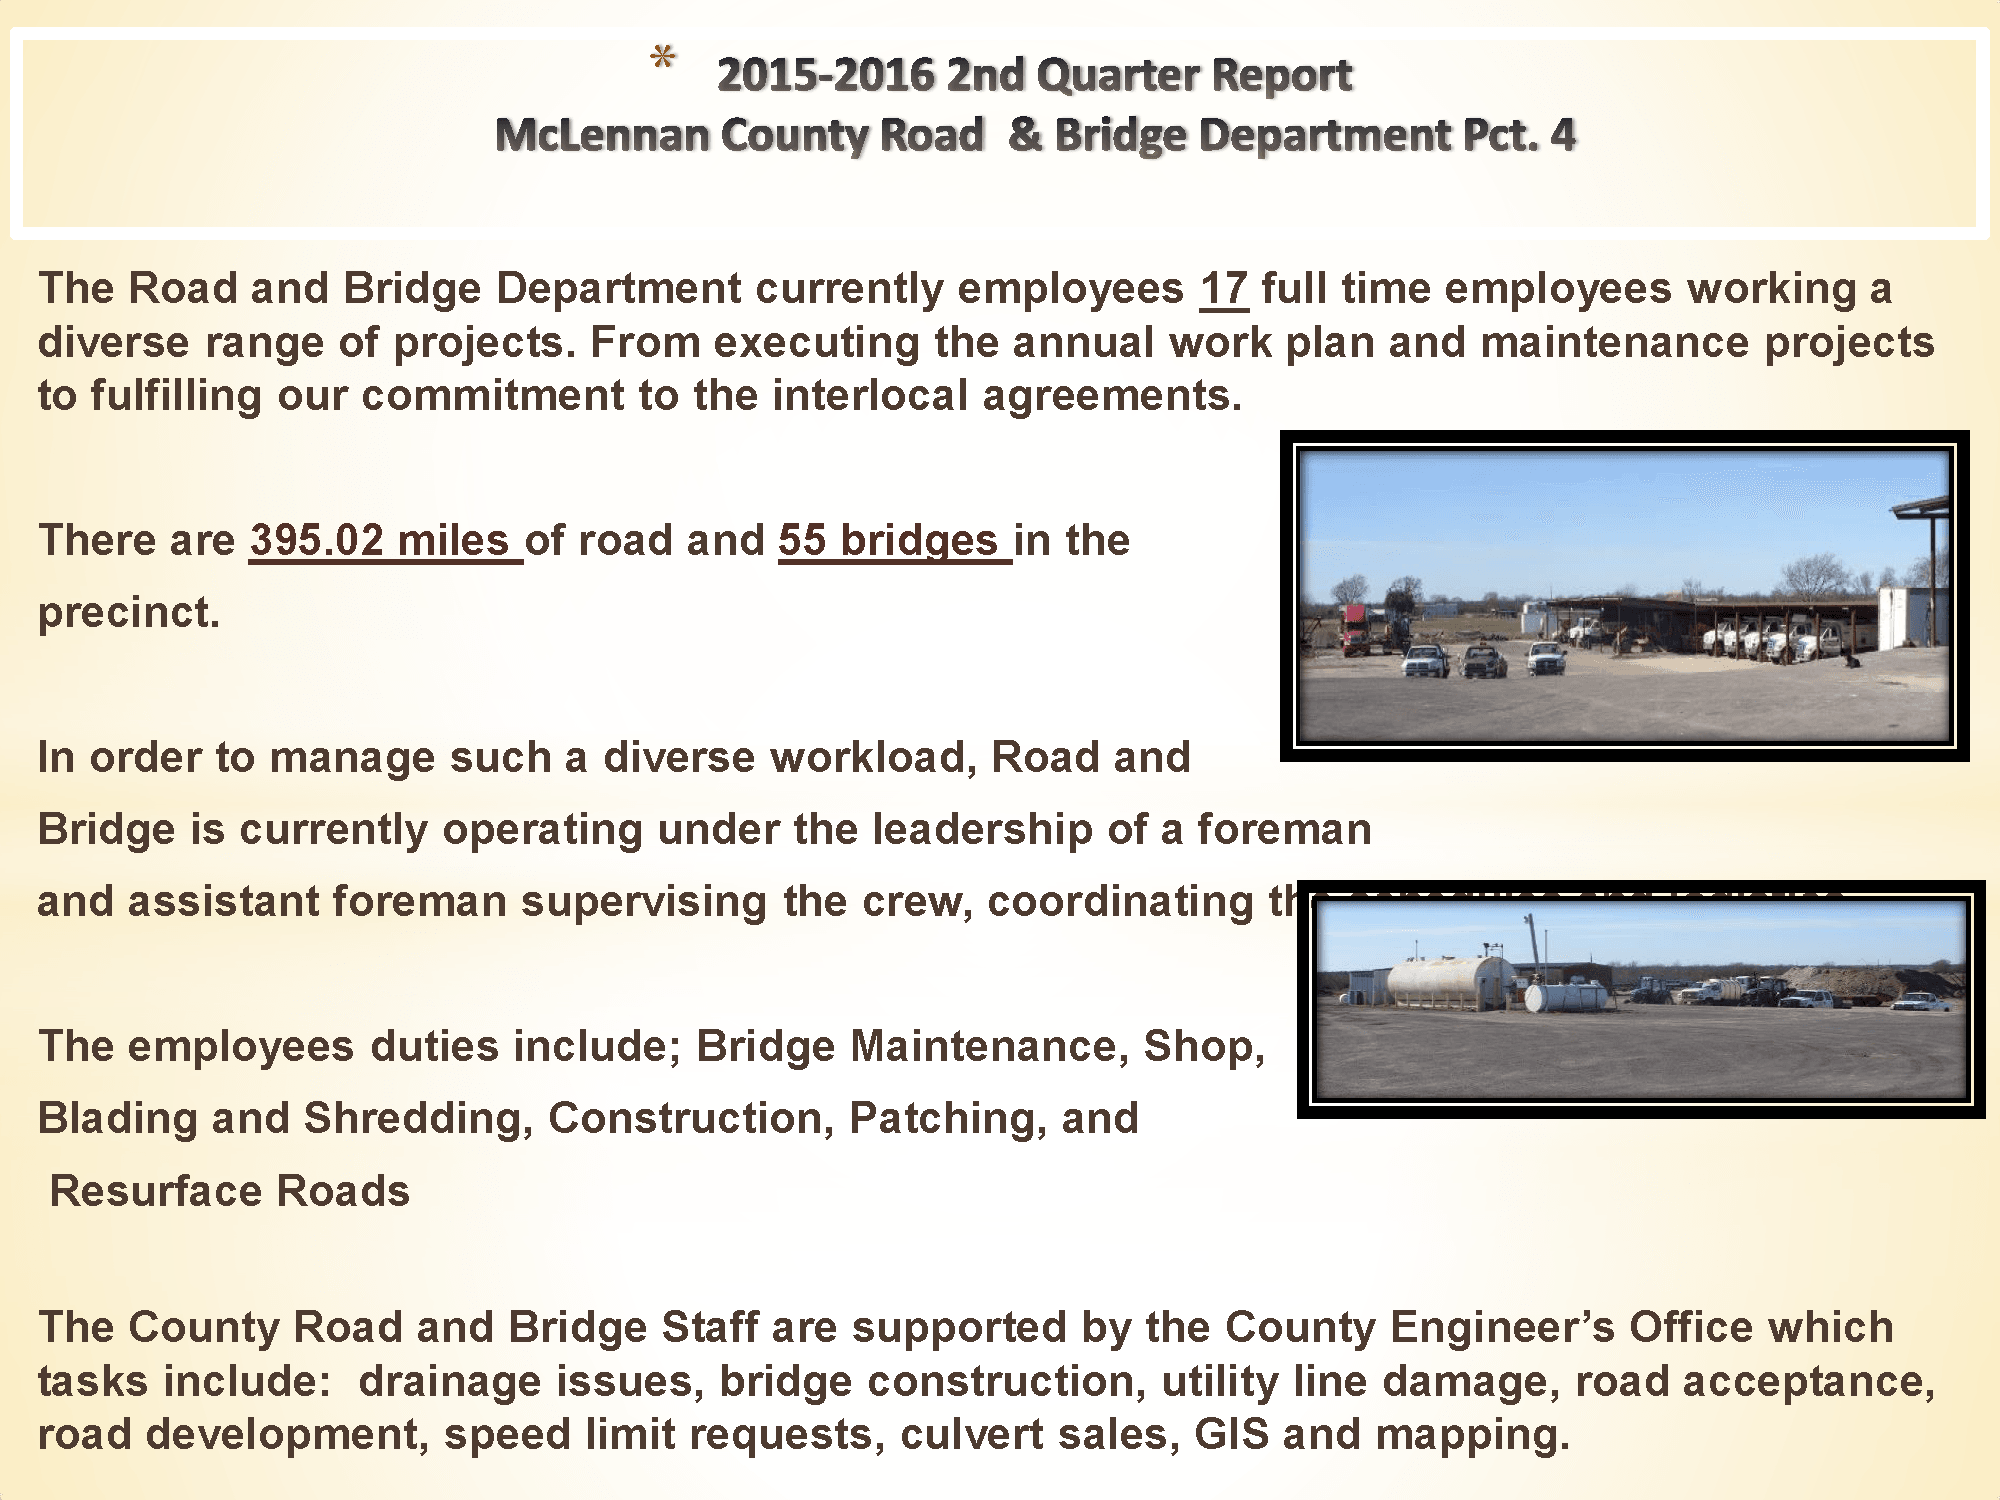 McLennan County Road & Bridge Department Precinct 4